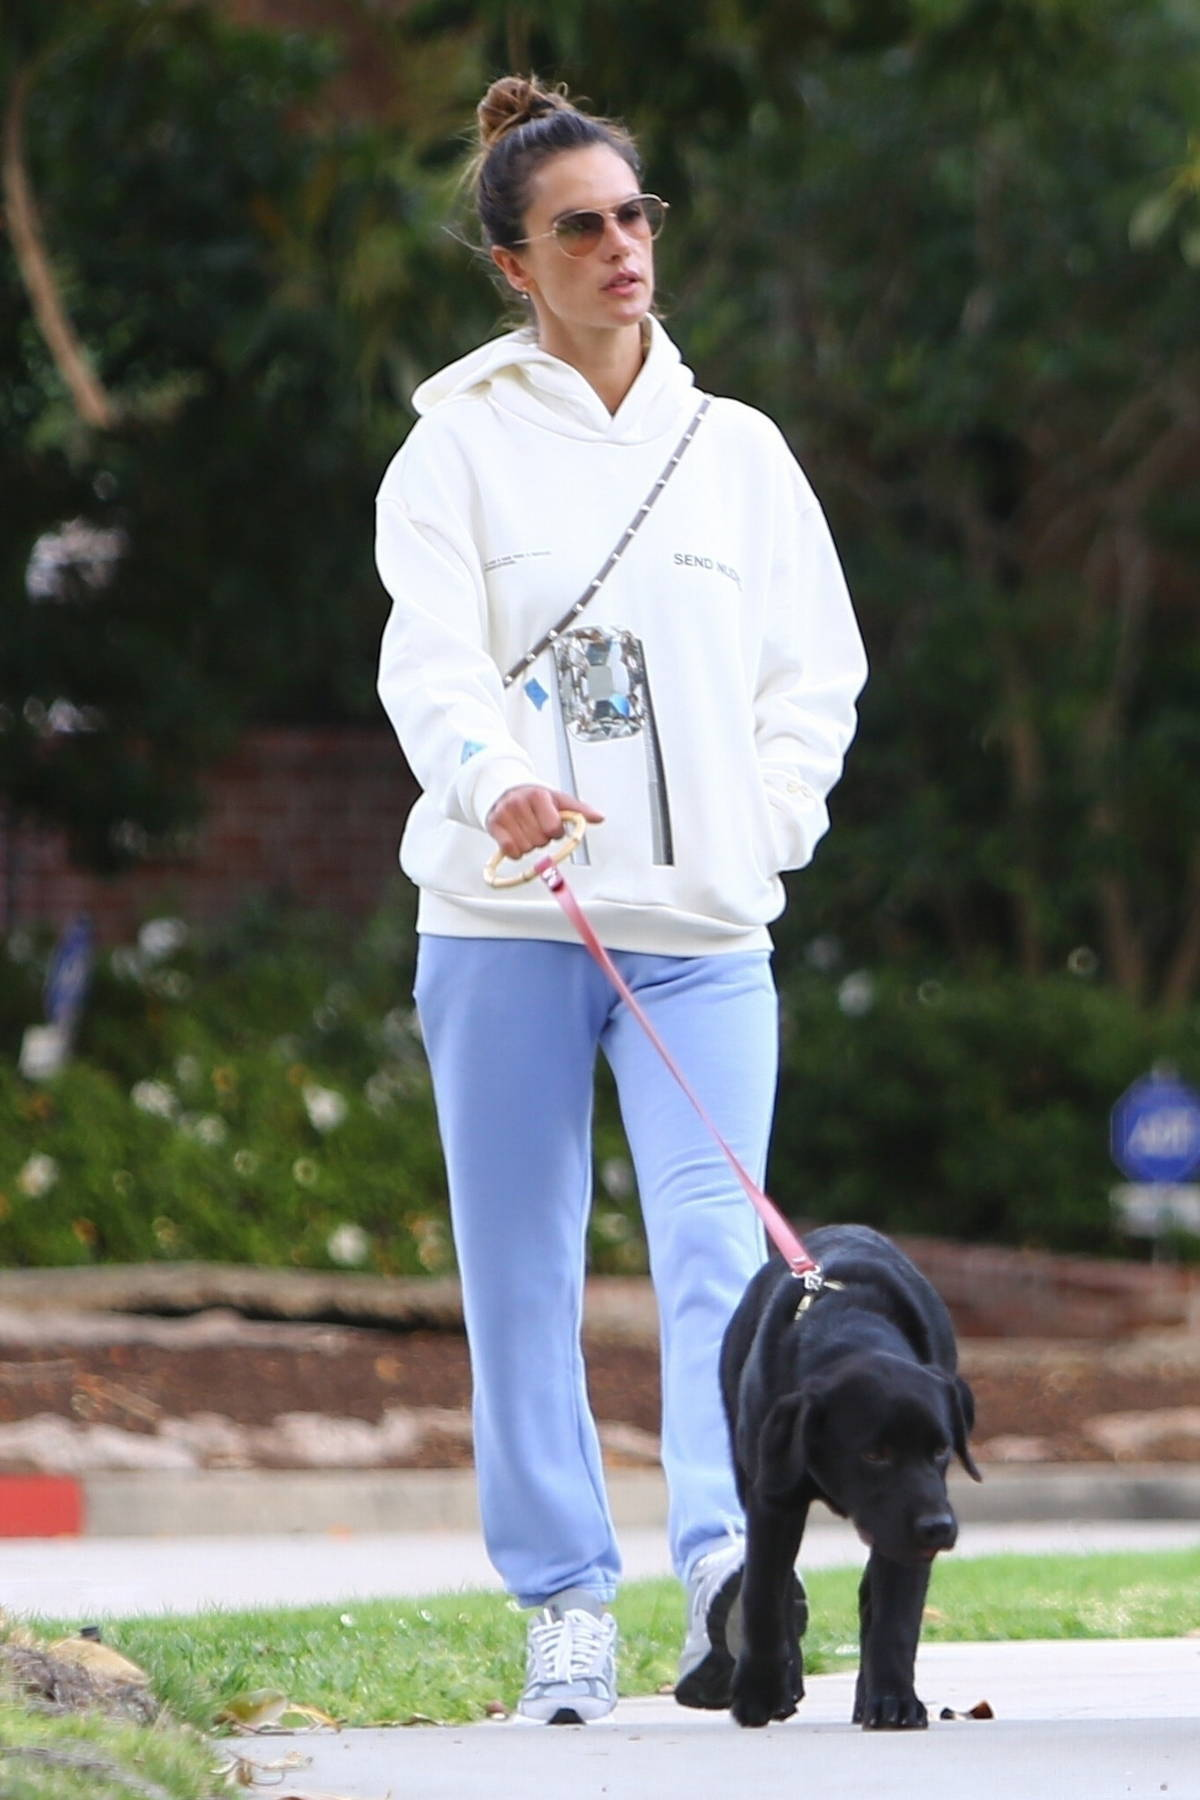 Alessandra Ambrosio looks cozy while out for morning stroll with her BFF Milan Blagojevic in Santa Monica, California